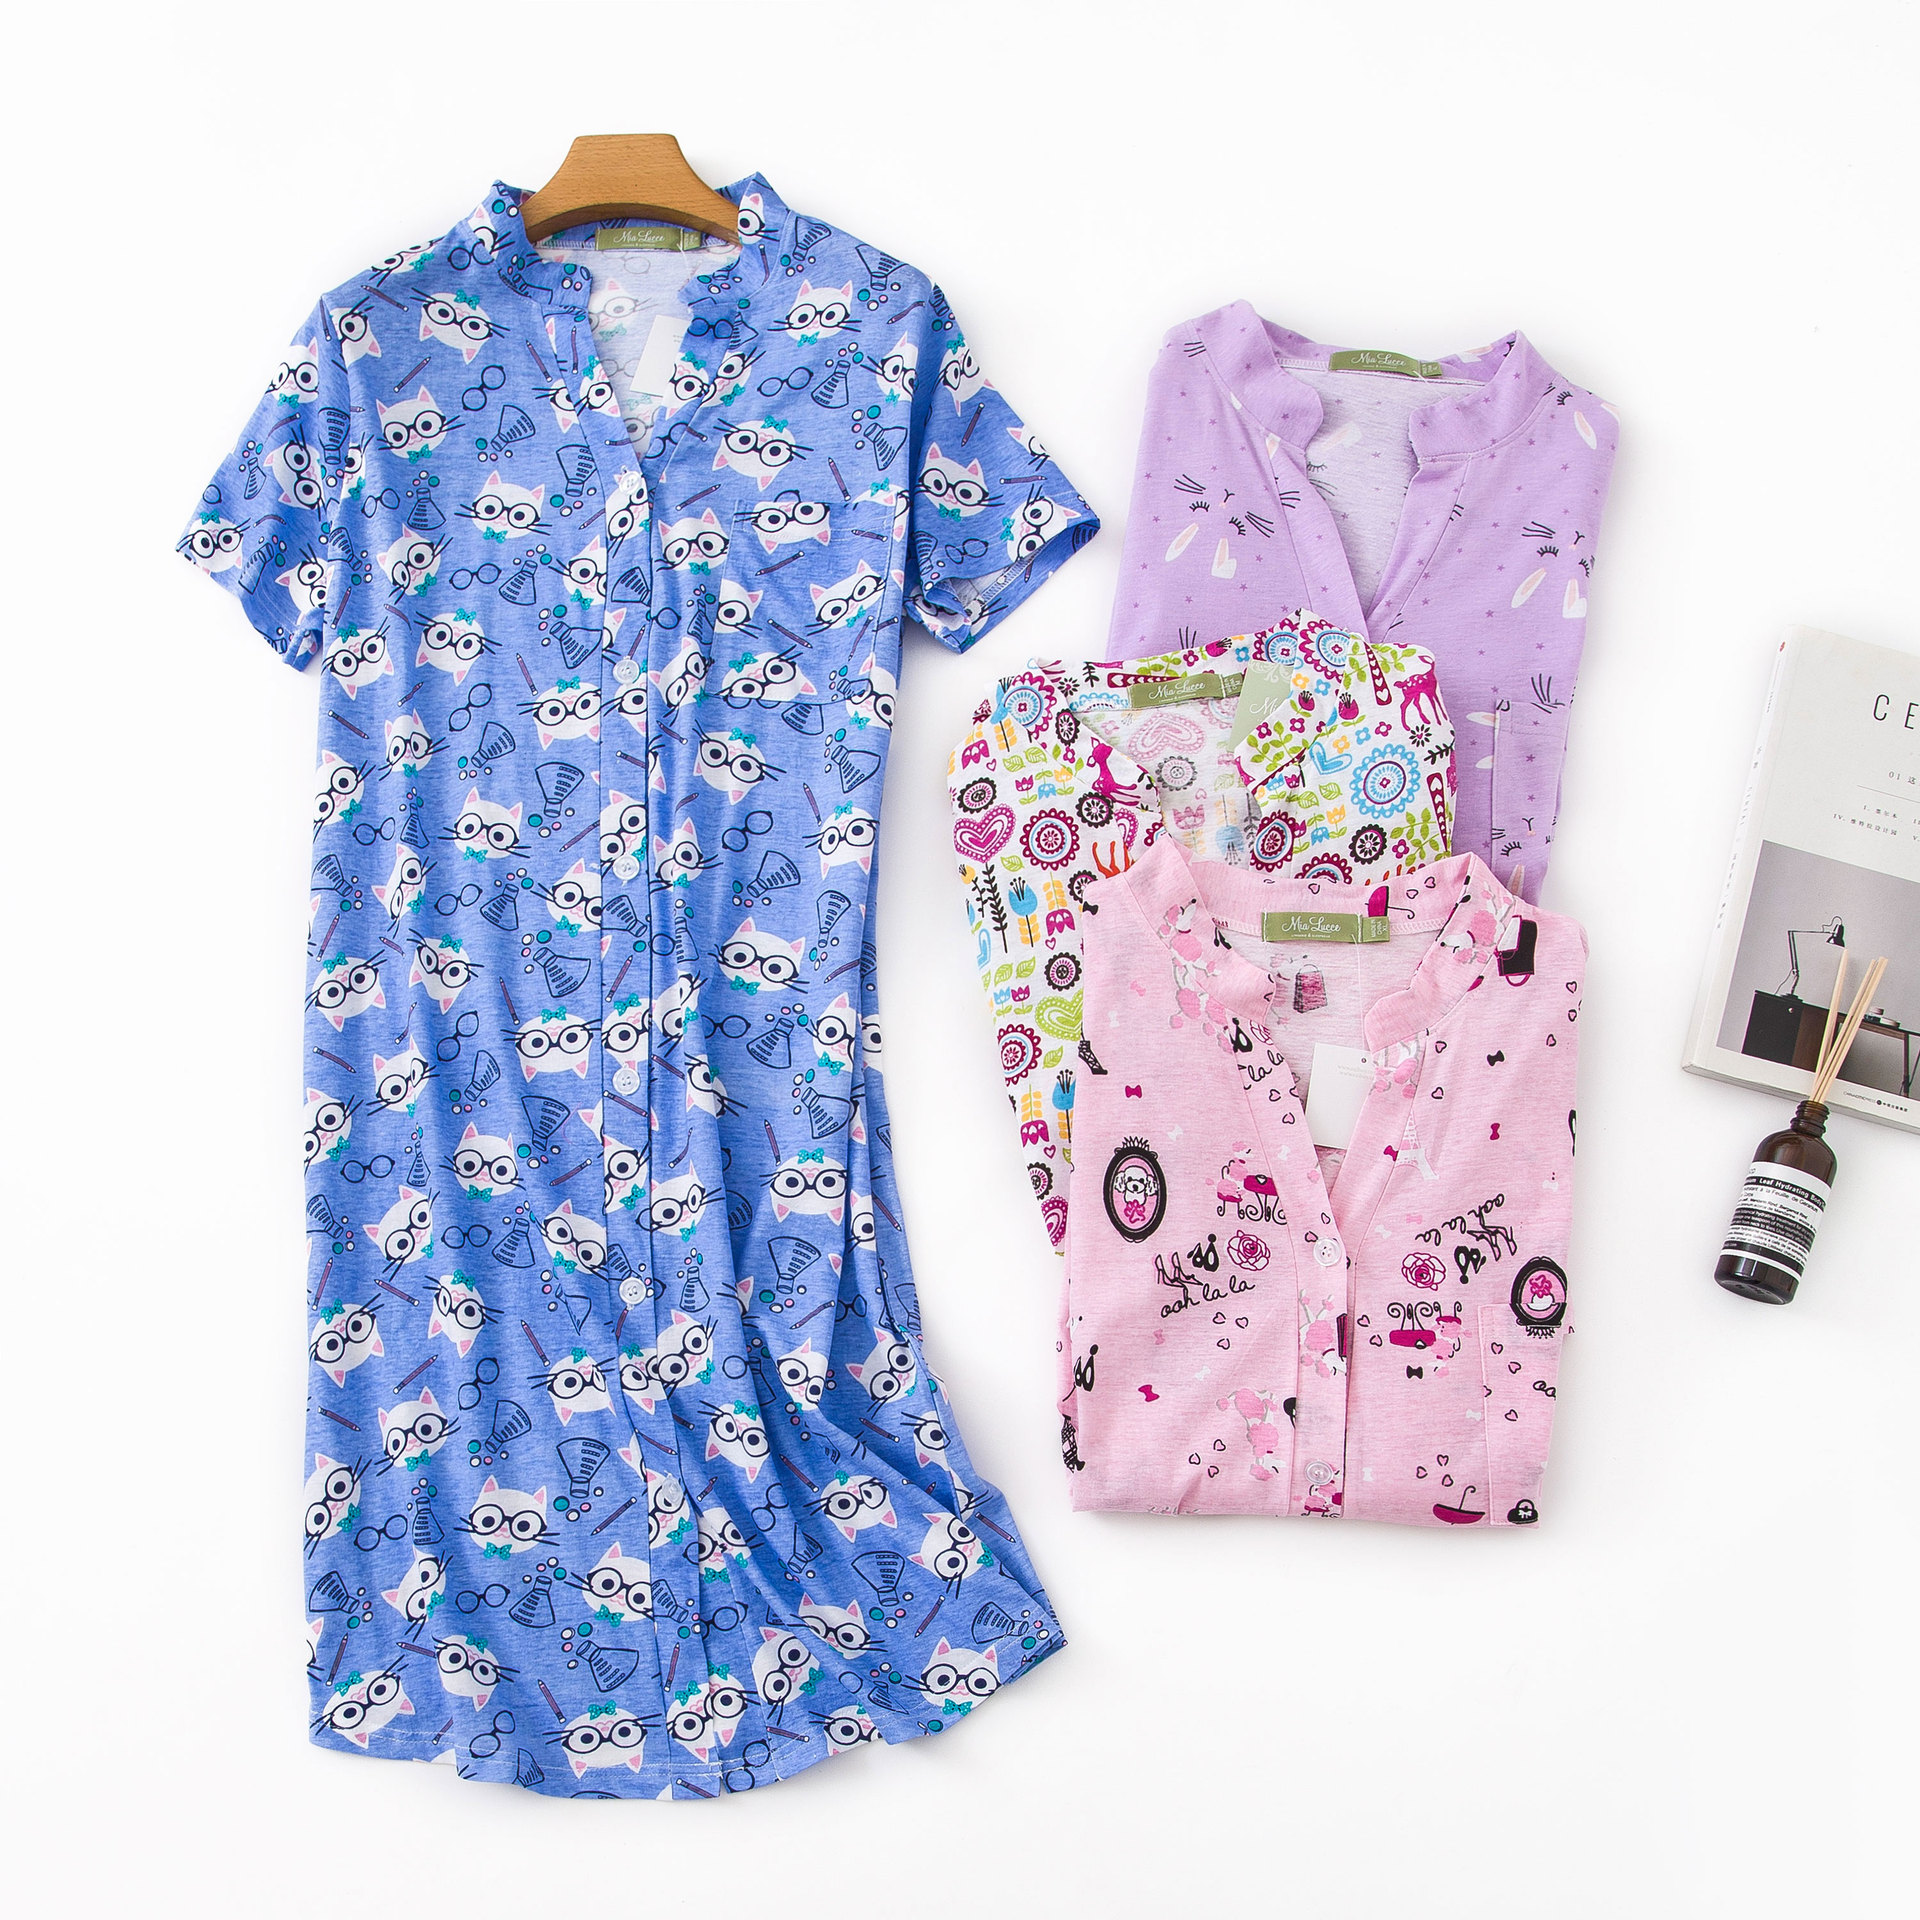 New 100% Cotton Short-sleeved Nightdress Cartoon Night Wear Ropa Para Dormir Mujer Womens   Nightgown   Sleepwear Sexy   Sleepshirts